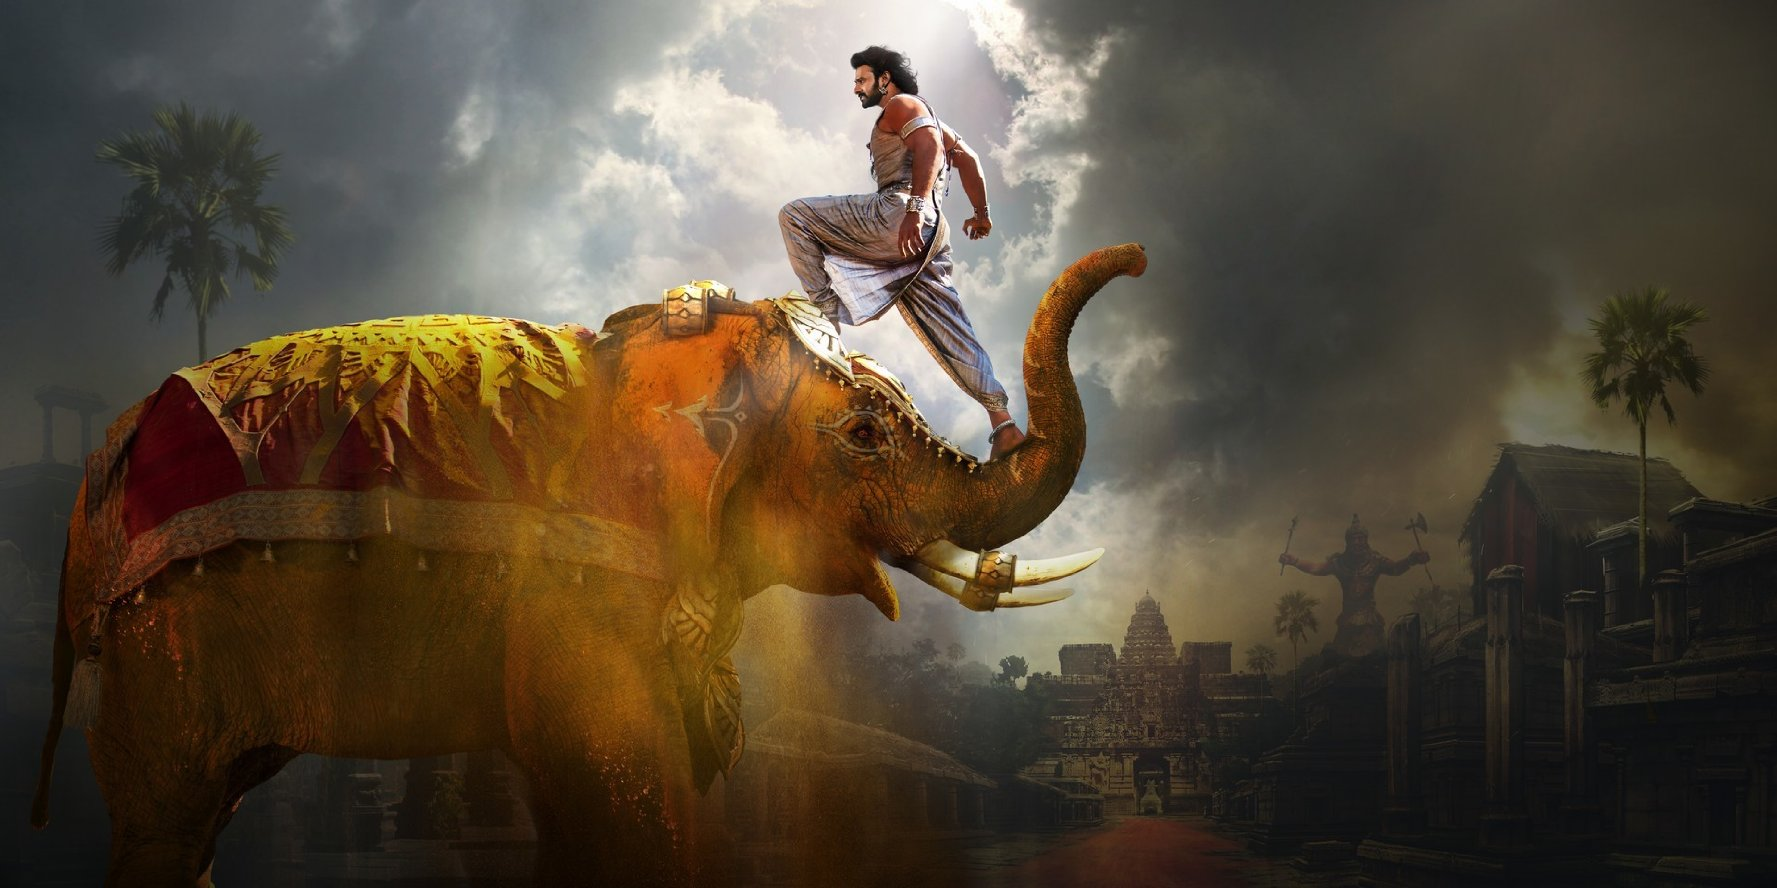 Baahubali 2: The Conclusion [Sub: Eng]